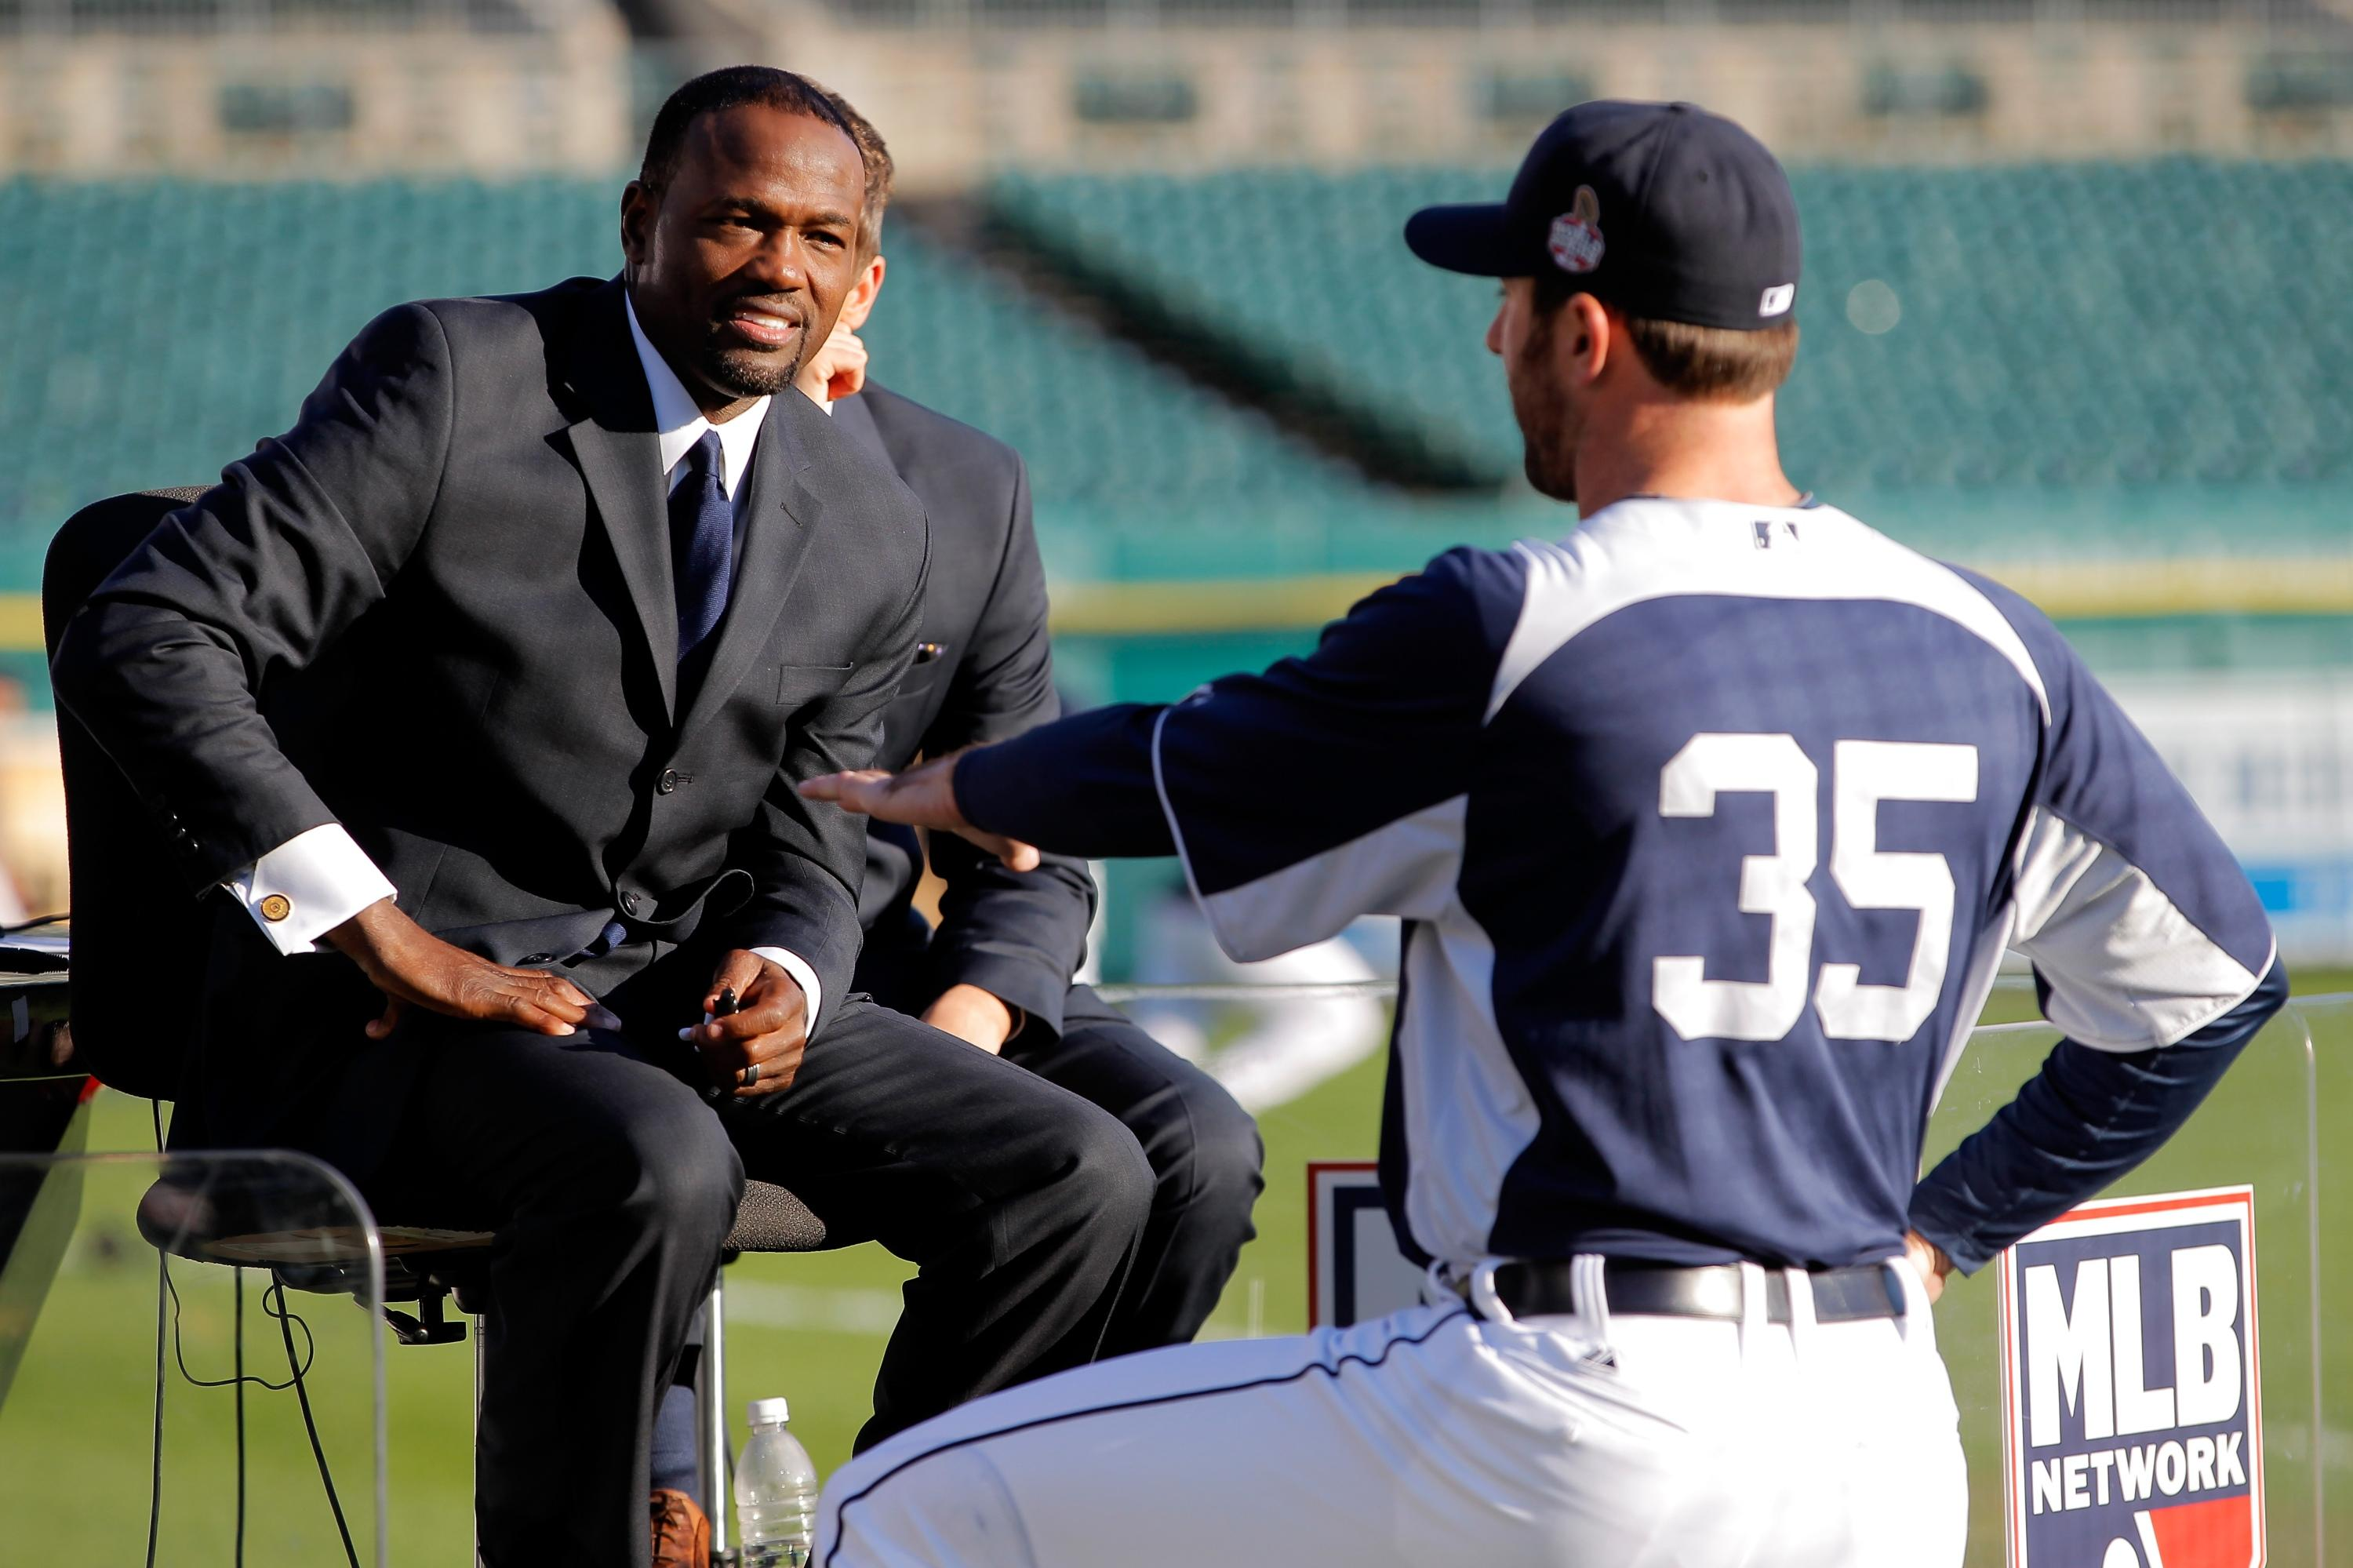 Harold Reynolds says Canadians can't catch, feels the country's wrath